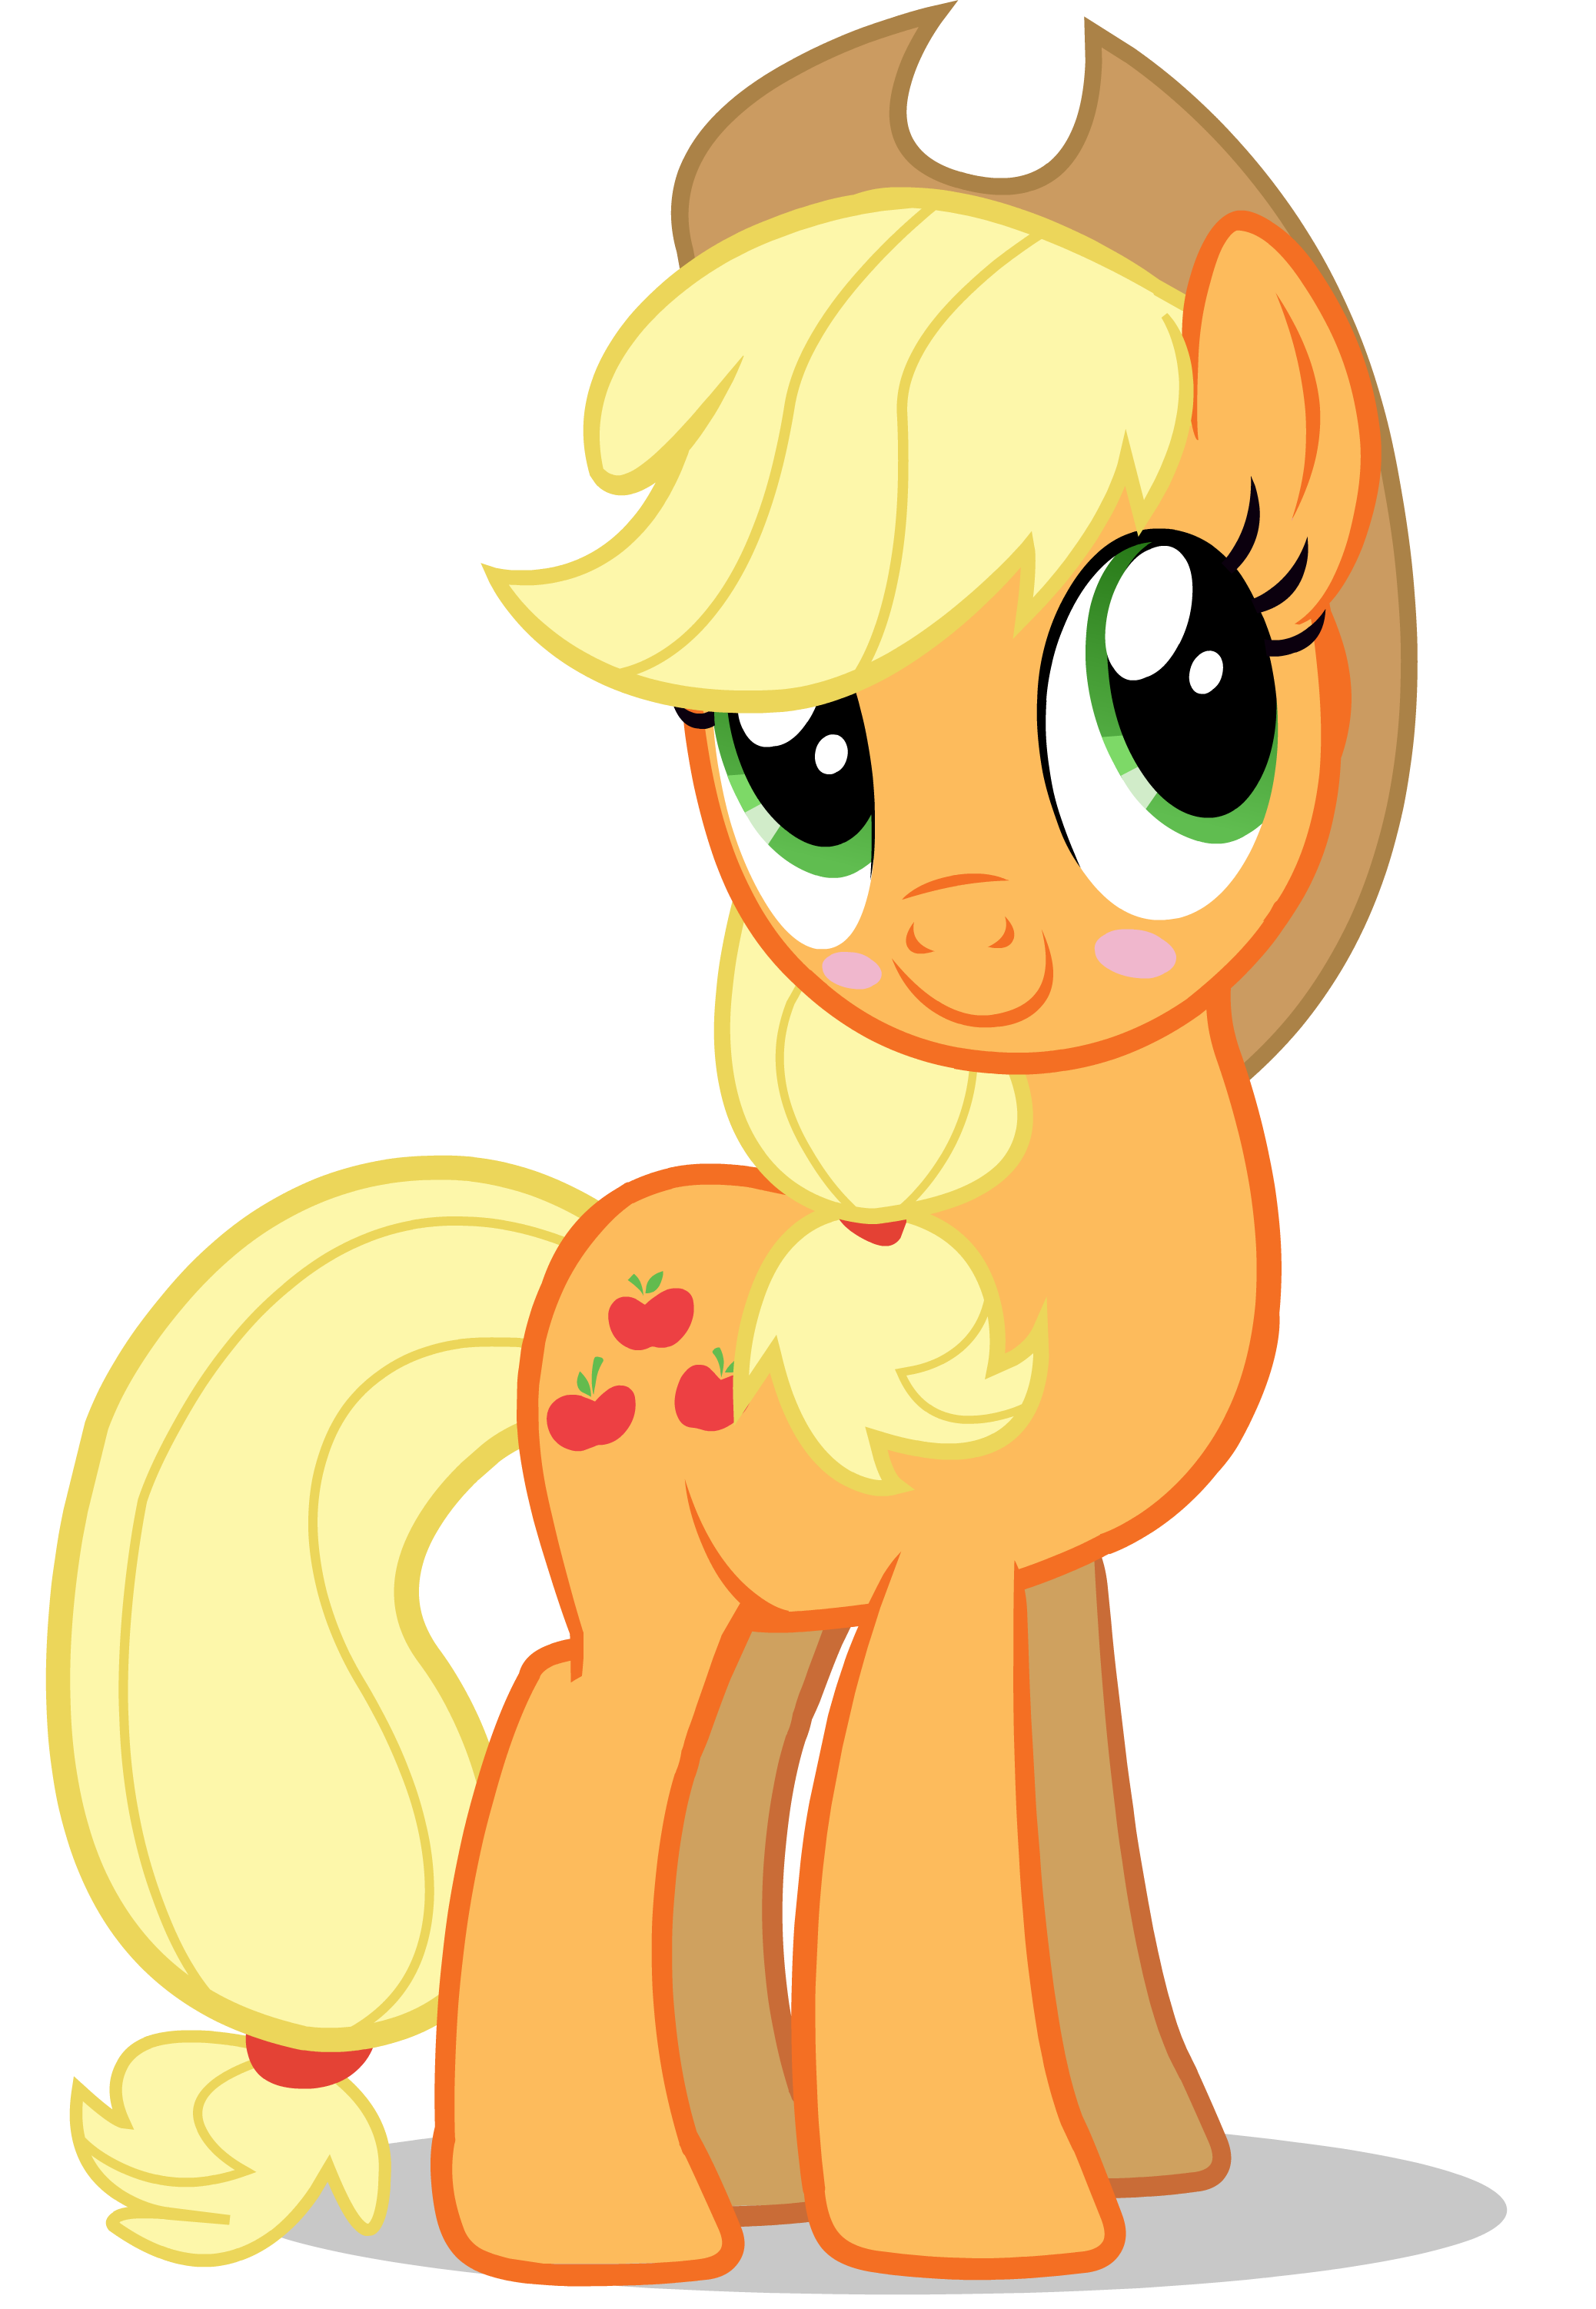 Apple jack clipart image library stock MLP - Applejack Blushing | MLP (My Little Pony Friendship is Magic ... image library stock